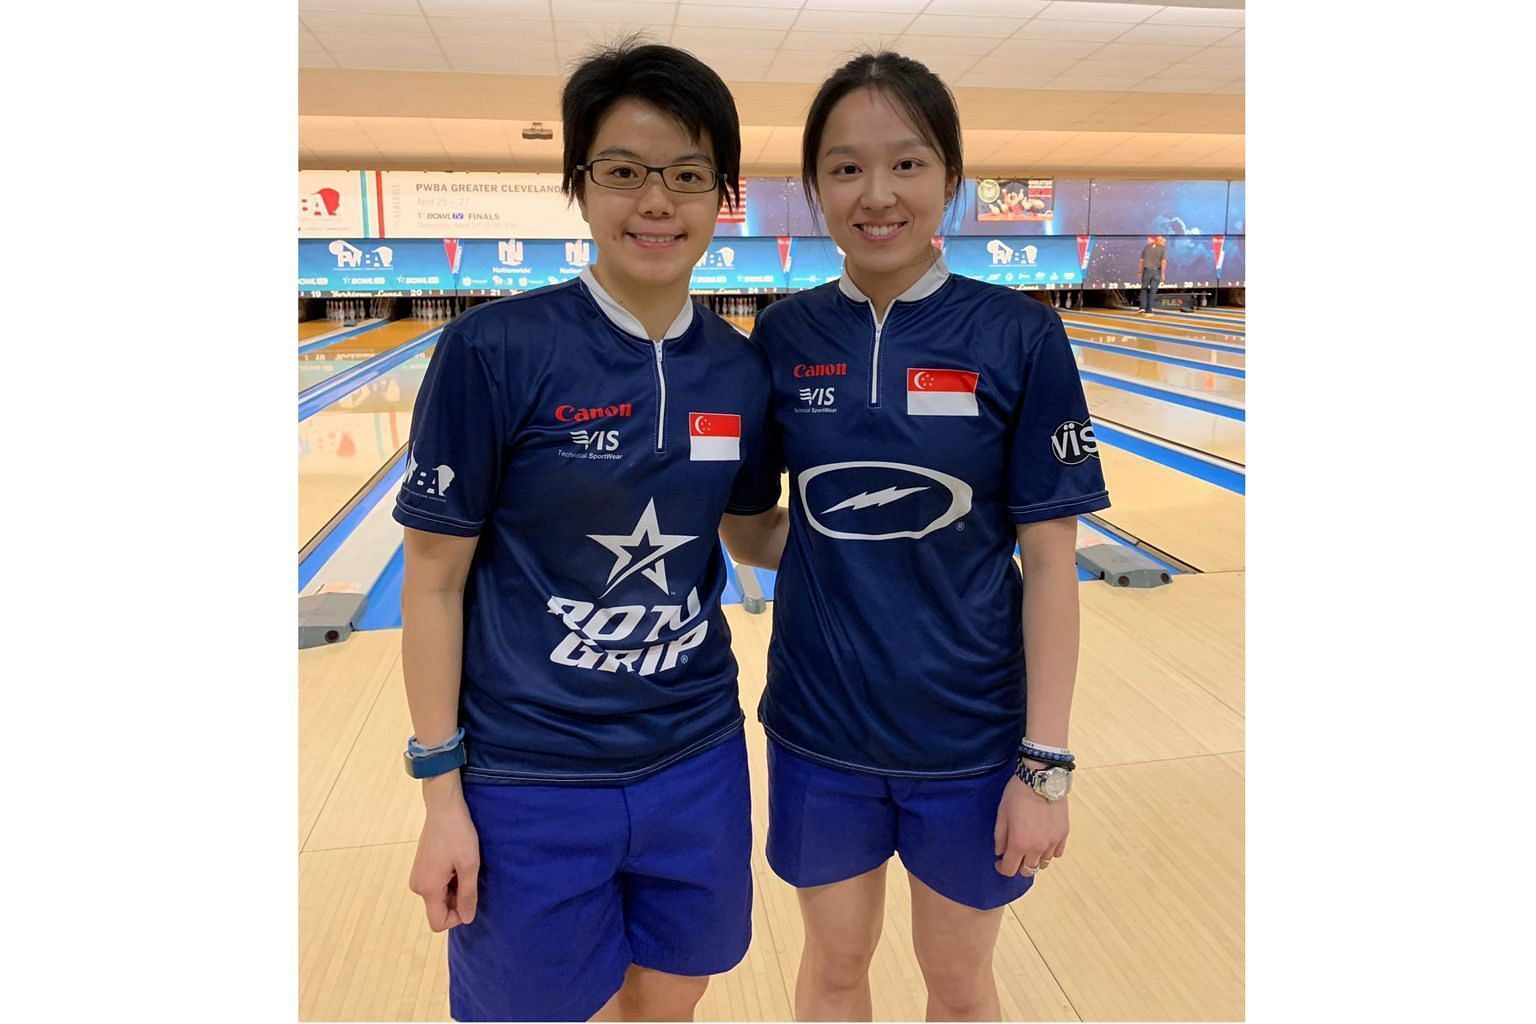 National bowlers Cherie Tan (left) and Jazreel Tan finished second and third respectively at the Nationwide PWBA Greater Cleveland Open on Saturday.